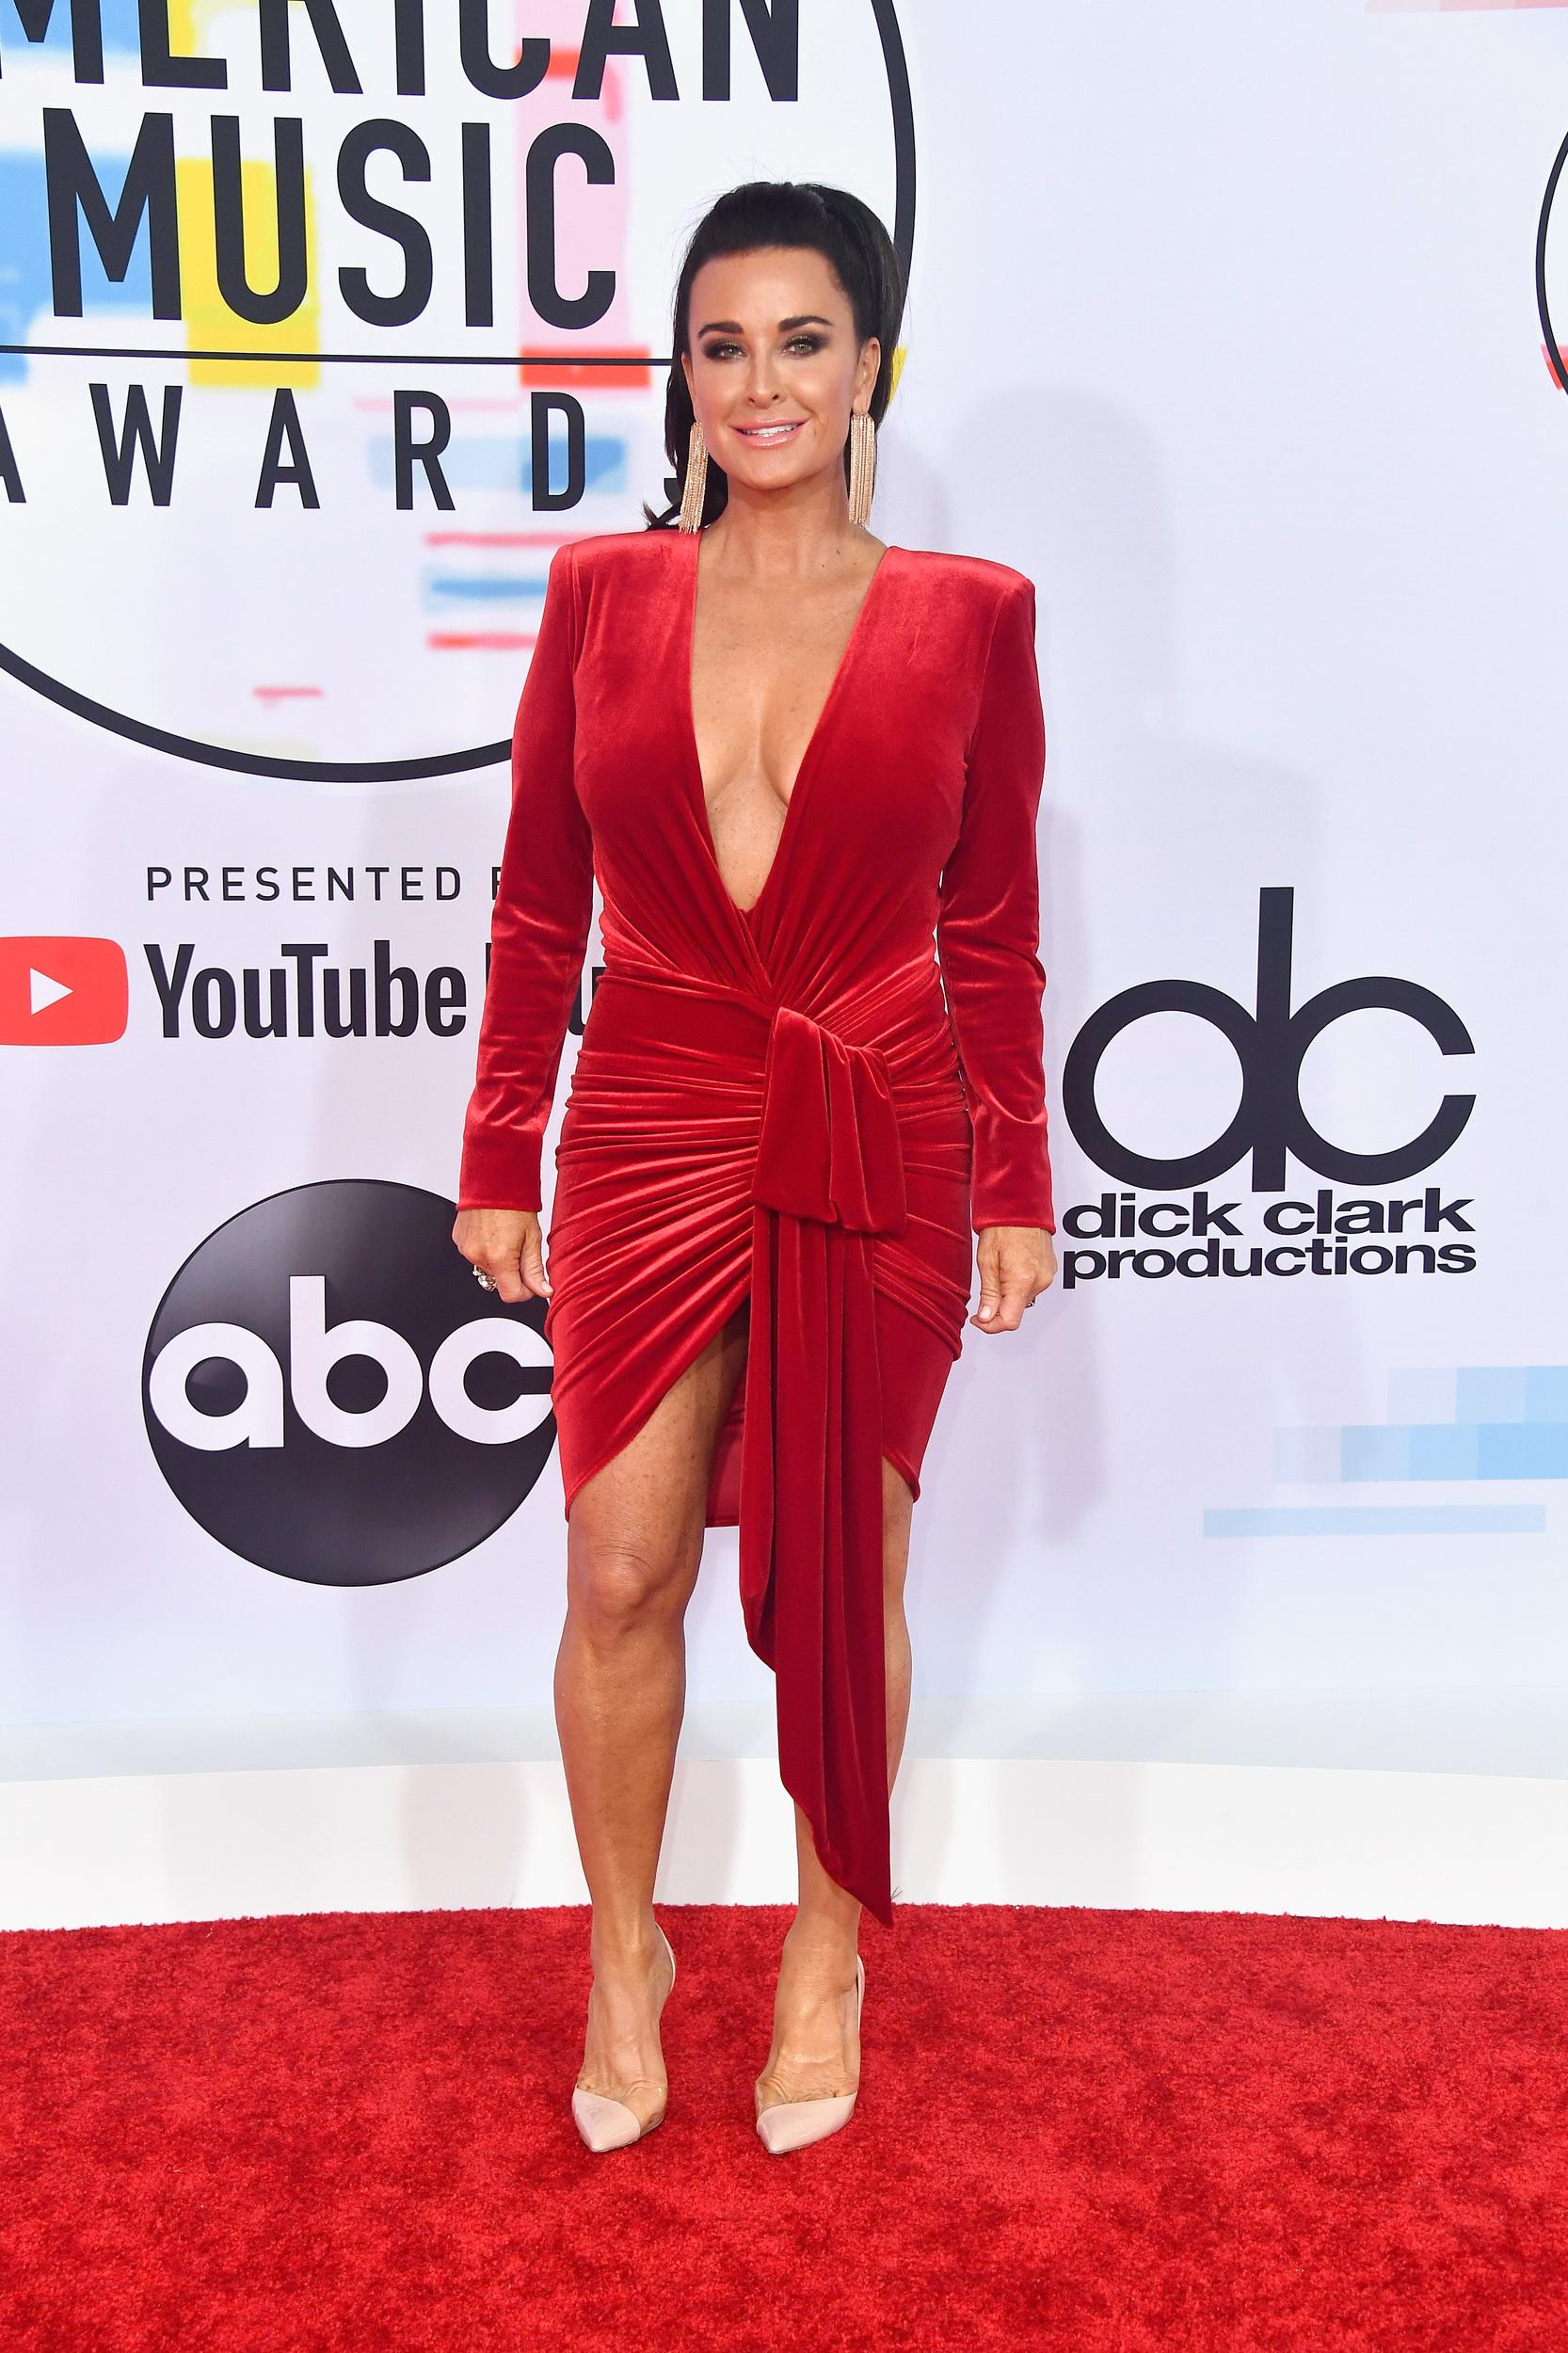 LOS ANGELES, CA - OCTOBER 09: Kyle Richards attends the 2018 American Music Awards at Microsoft Theater on October 9, 2018 in Los Angeles, California. (Photo by Frazer Harrison/Getty Images)